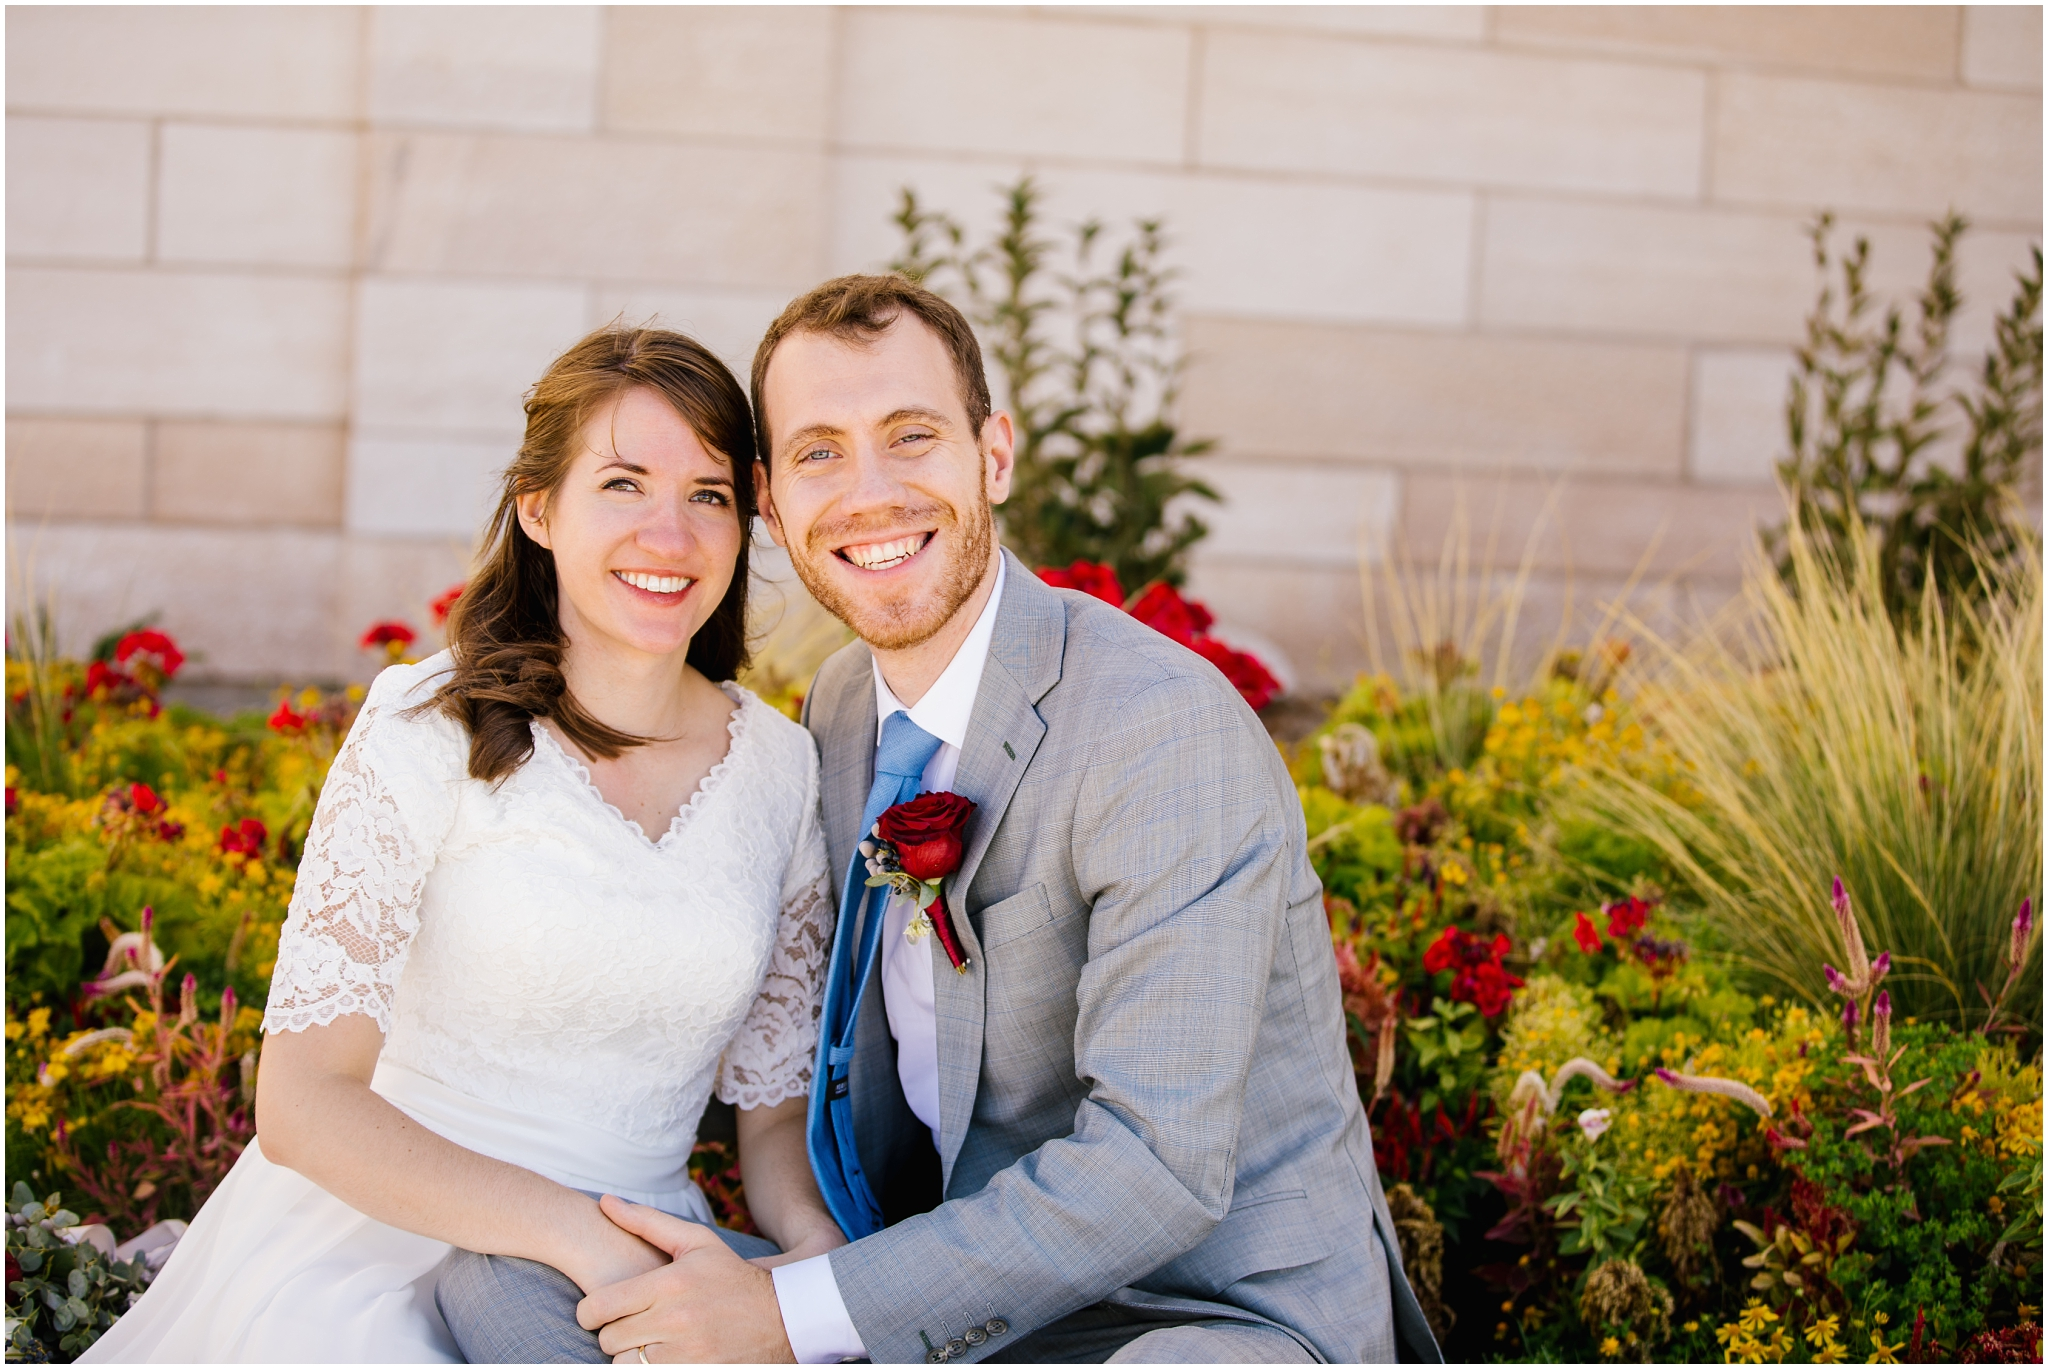 BrynneWinston-167_Lizzie-B-Imagery-Utah-Wedding-Photographer-Utah-County-Manti-Temple.jpg